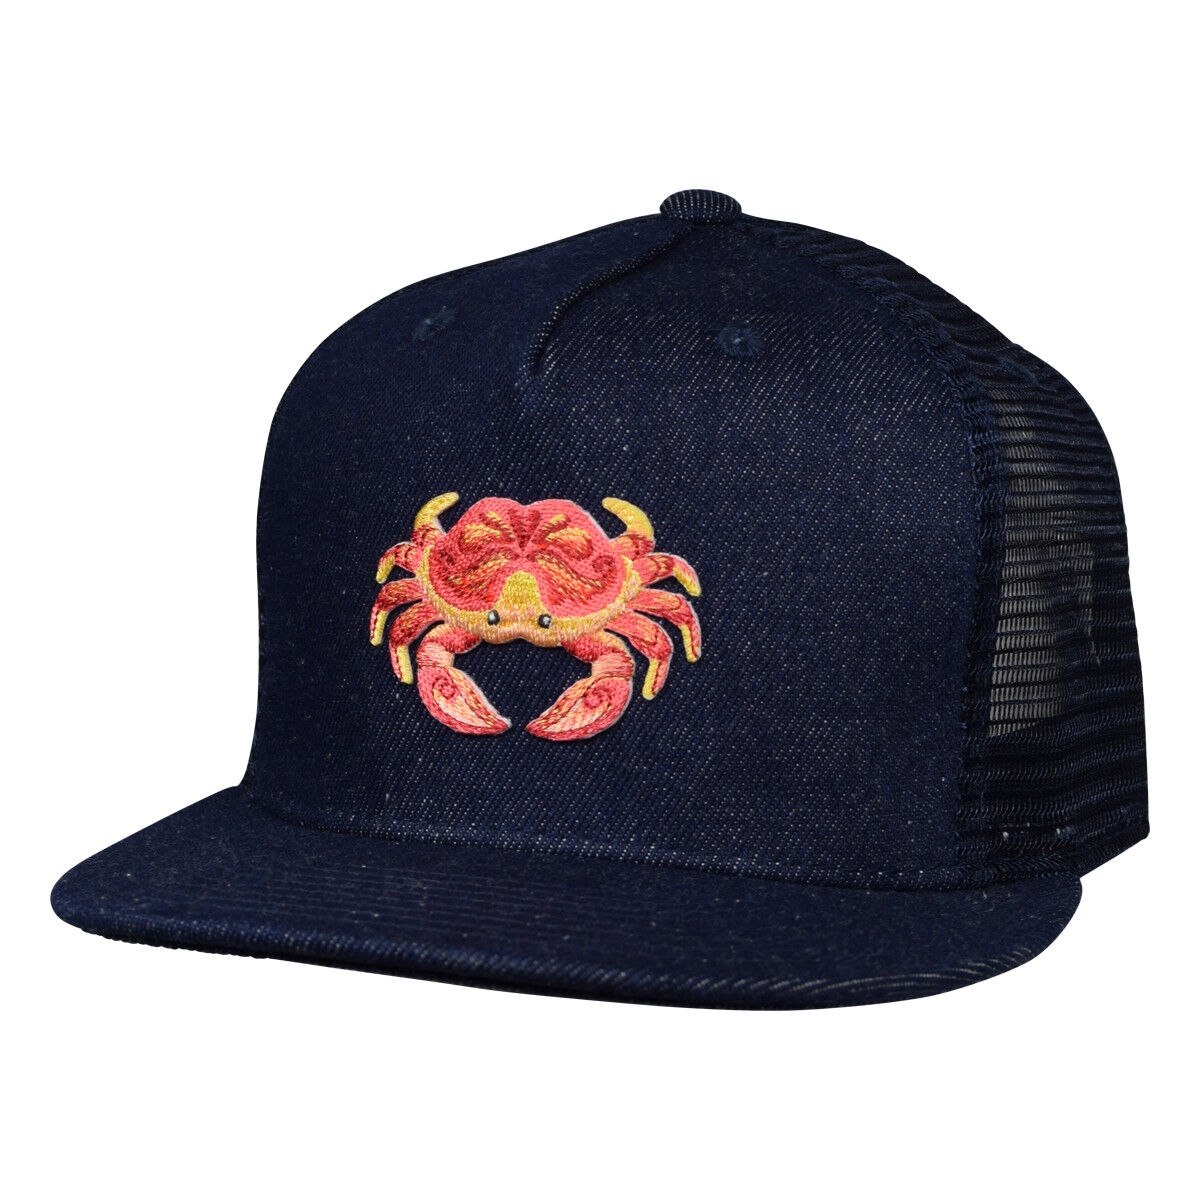 San Francisco Dungeness Crab Trucker Hat By Let's Be Irie...